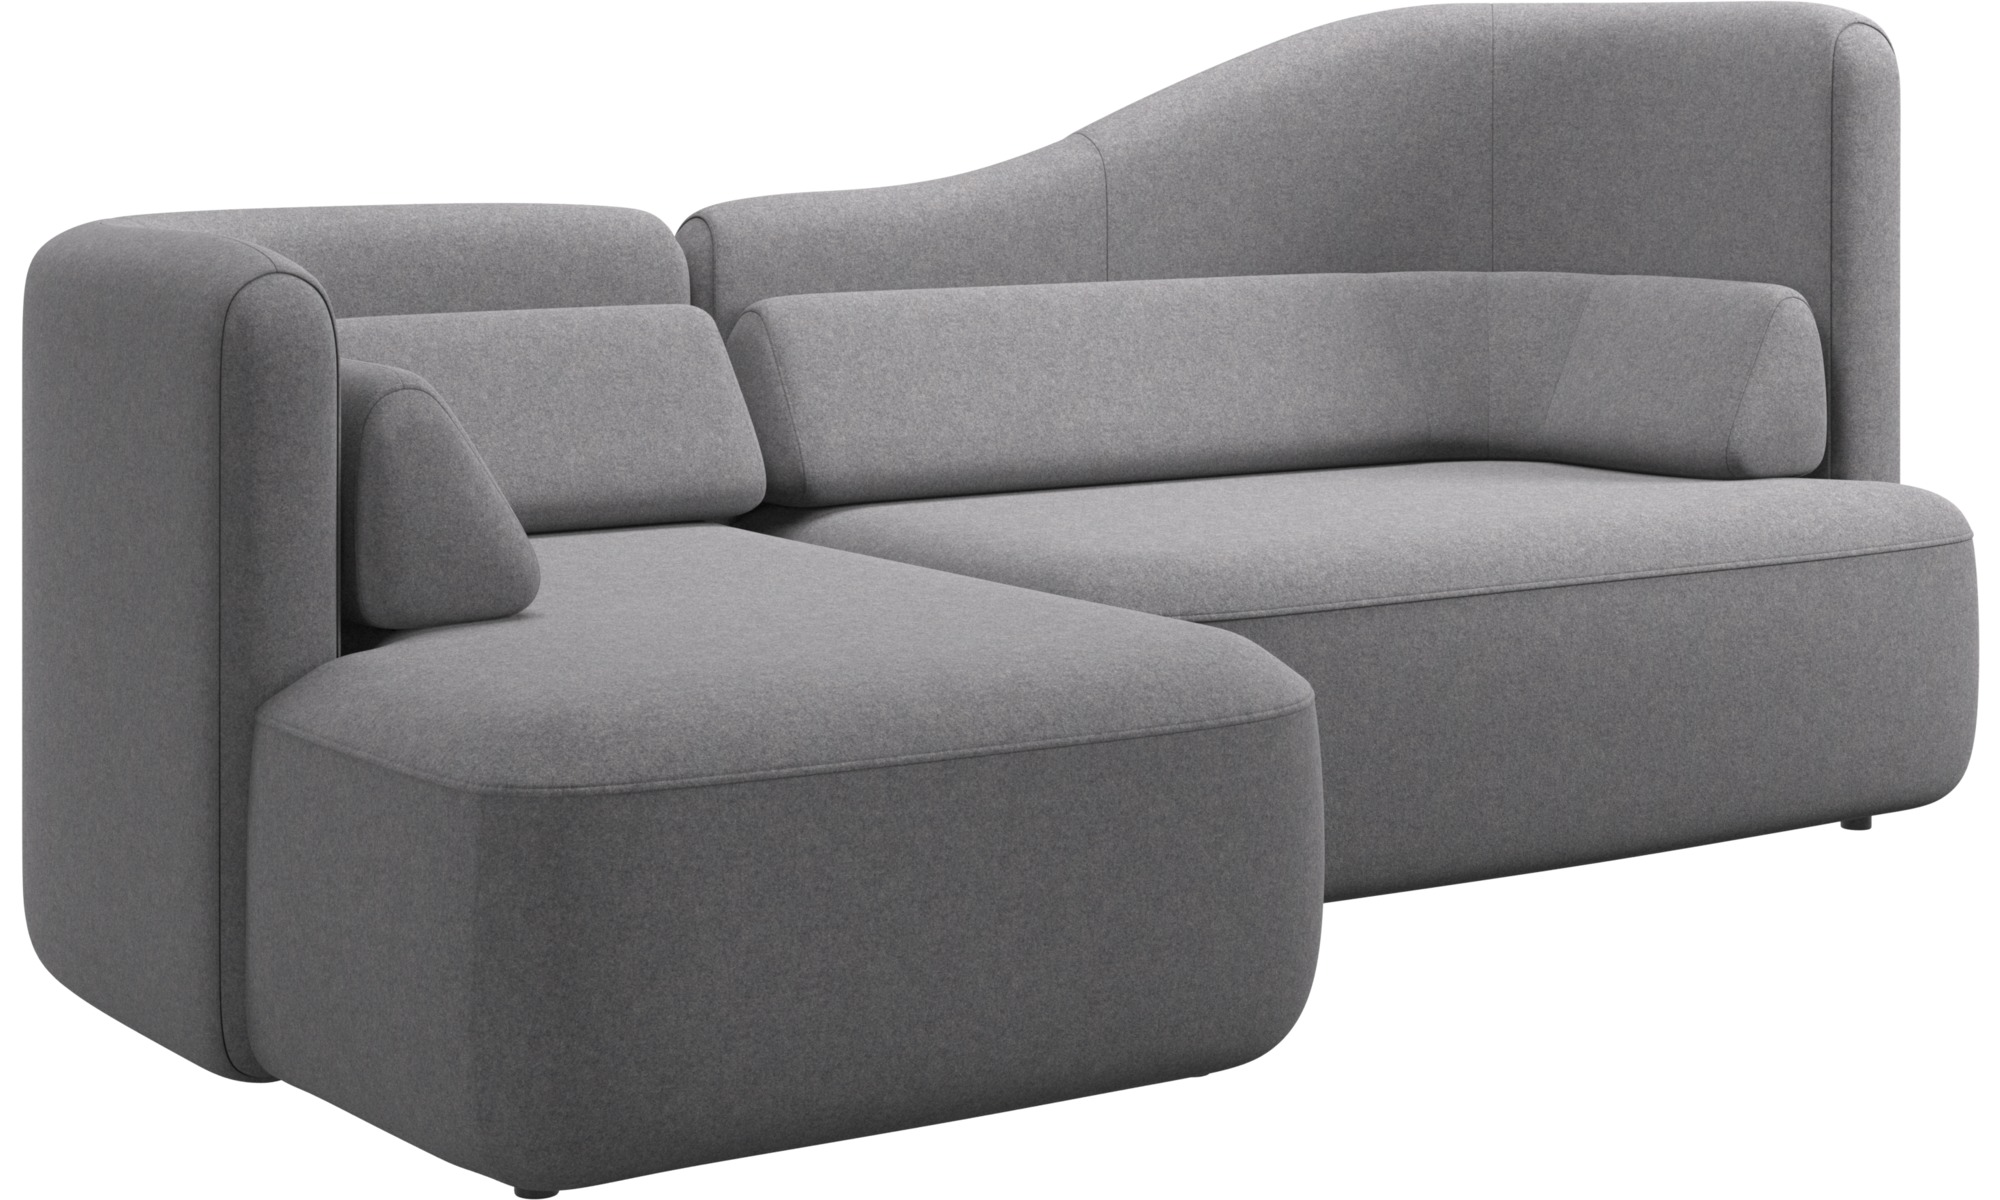 Modular Sofas Ottawa Sofa Grey Fabric